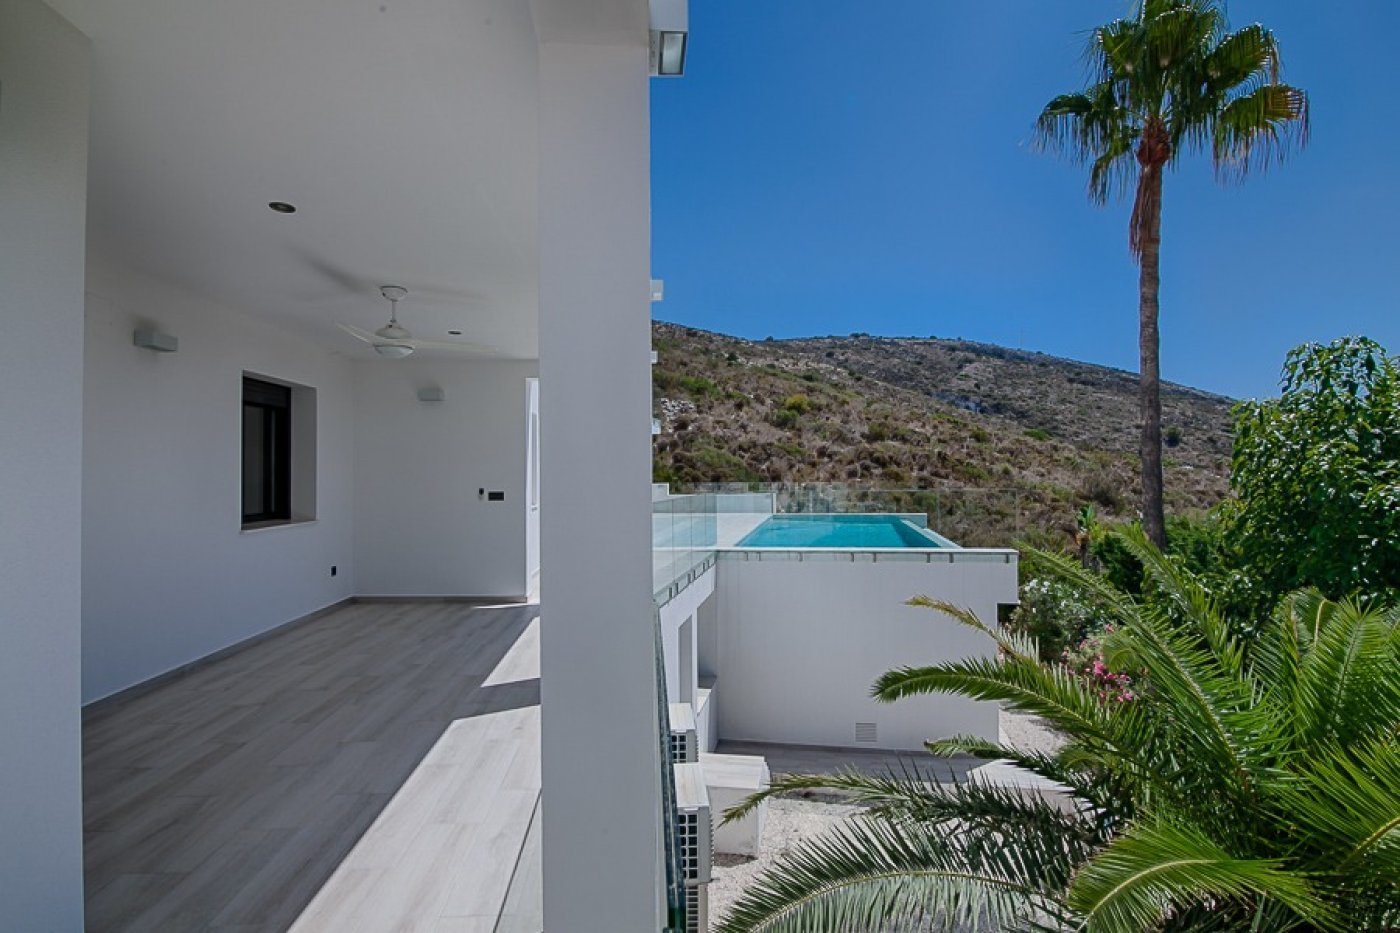 New modern villa with excellent sea views in El Portet